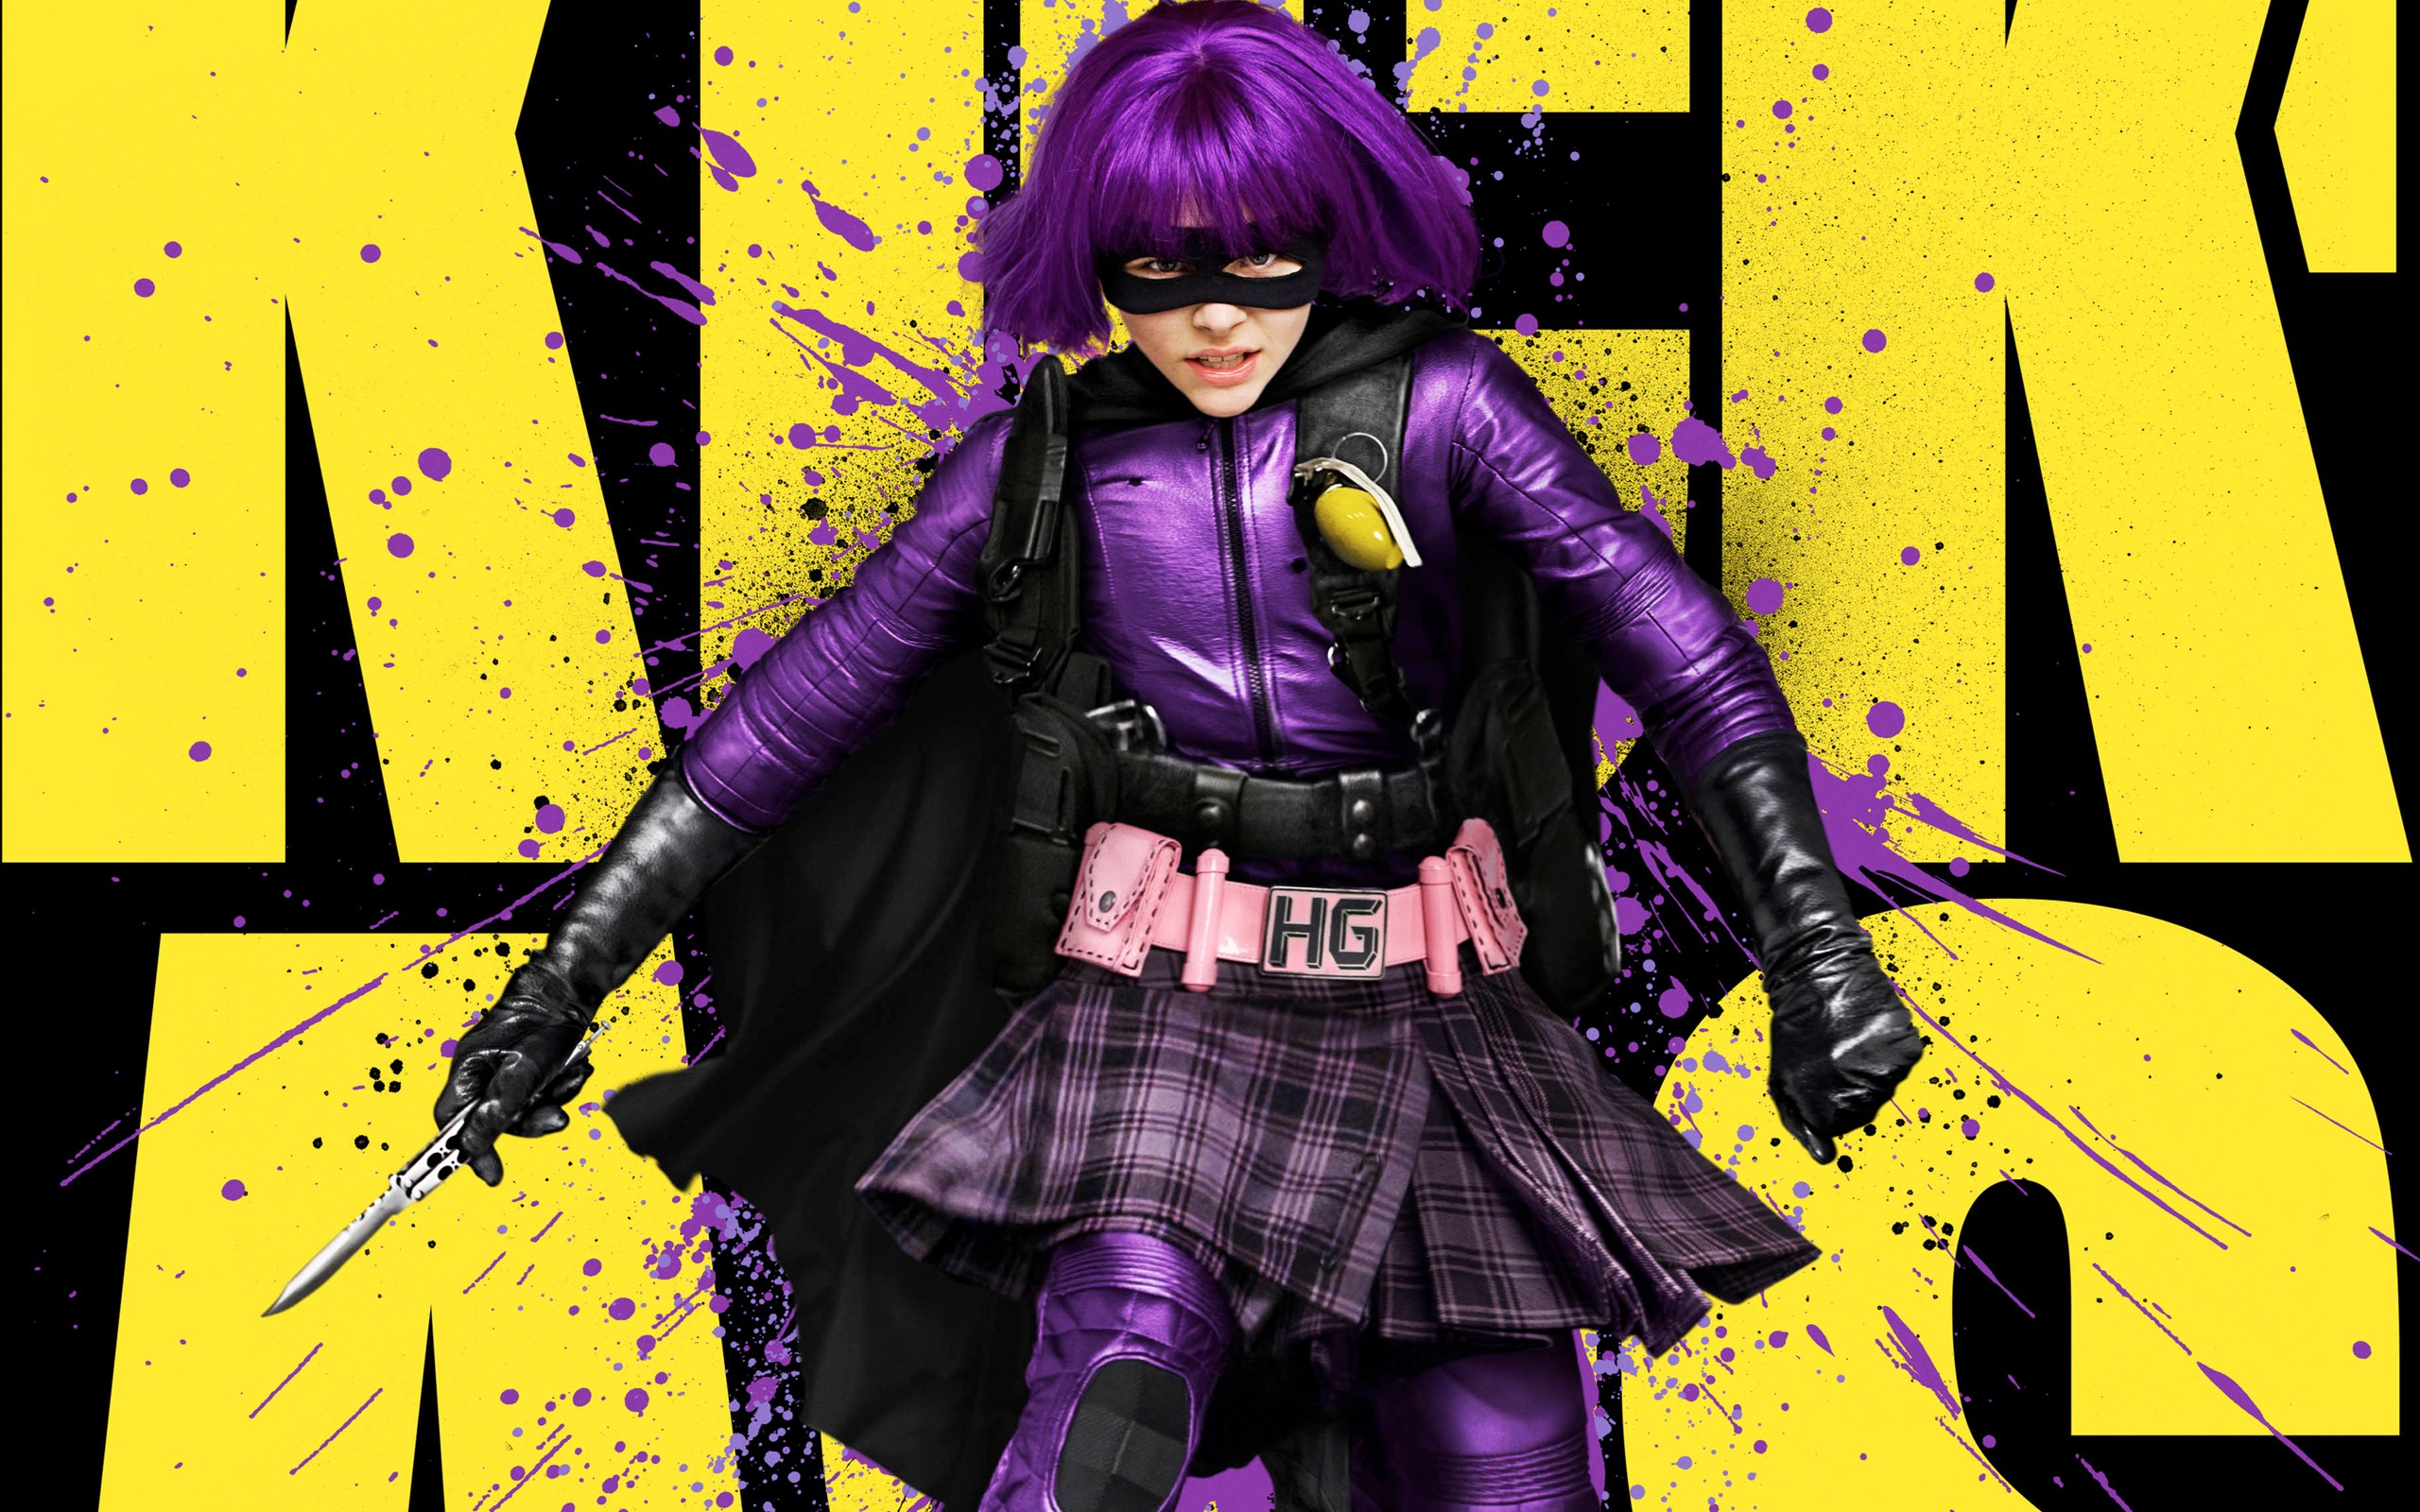 Can not Kick ass and hit girl nude